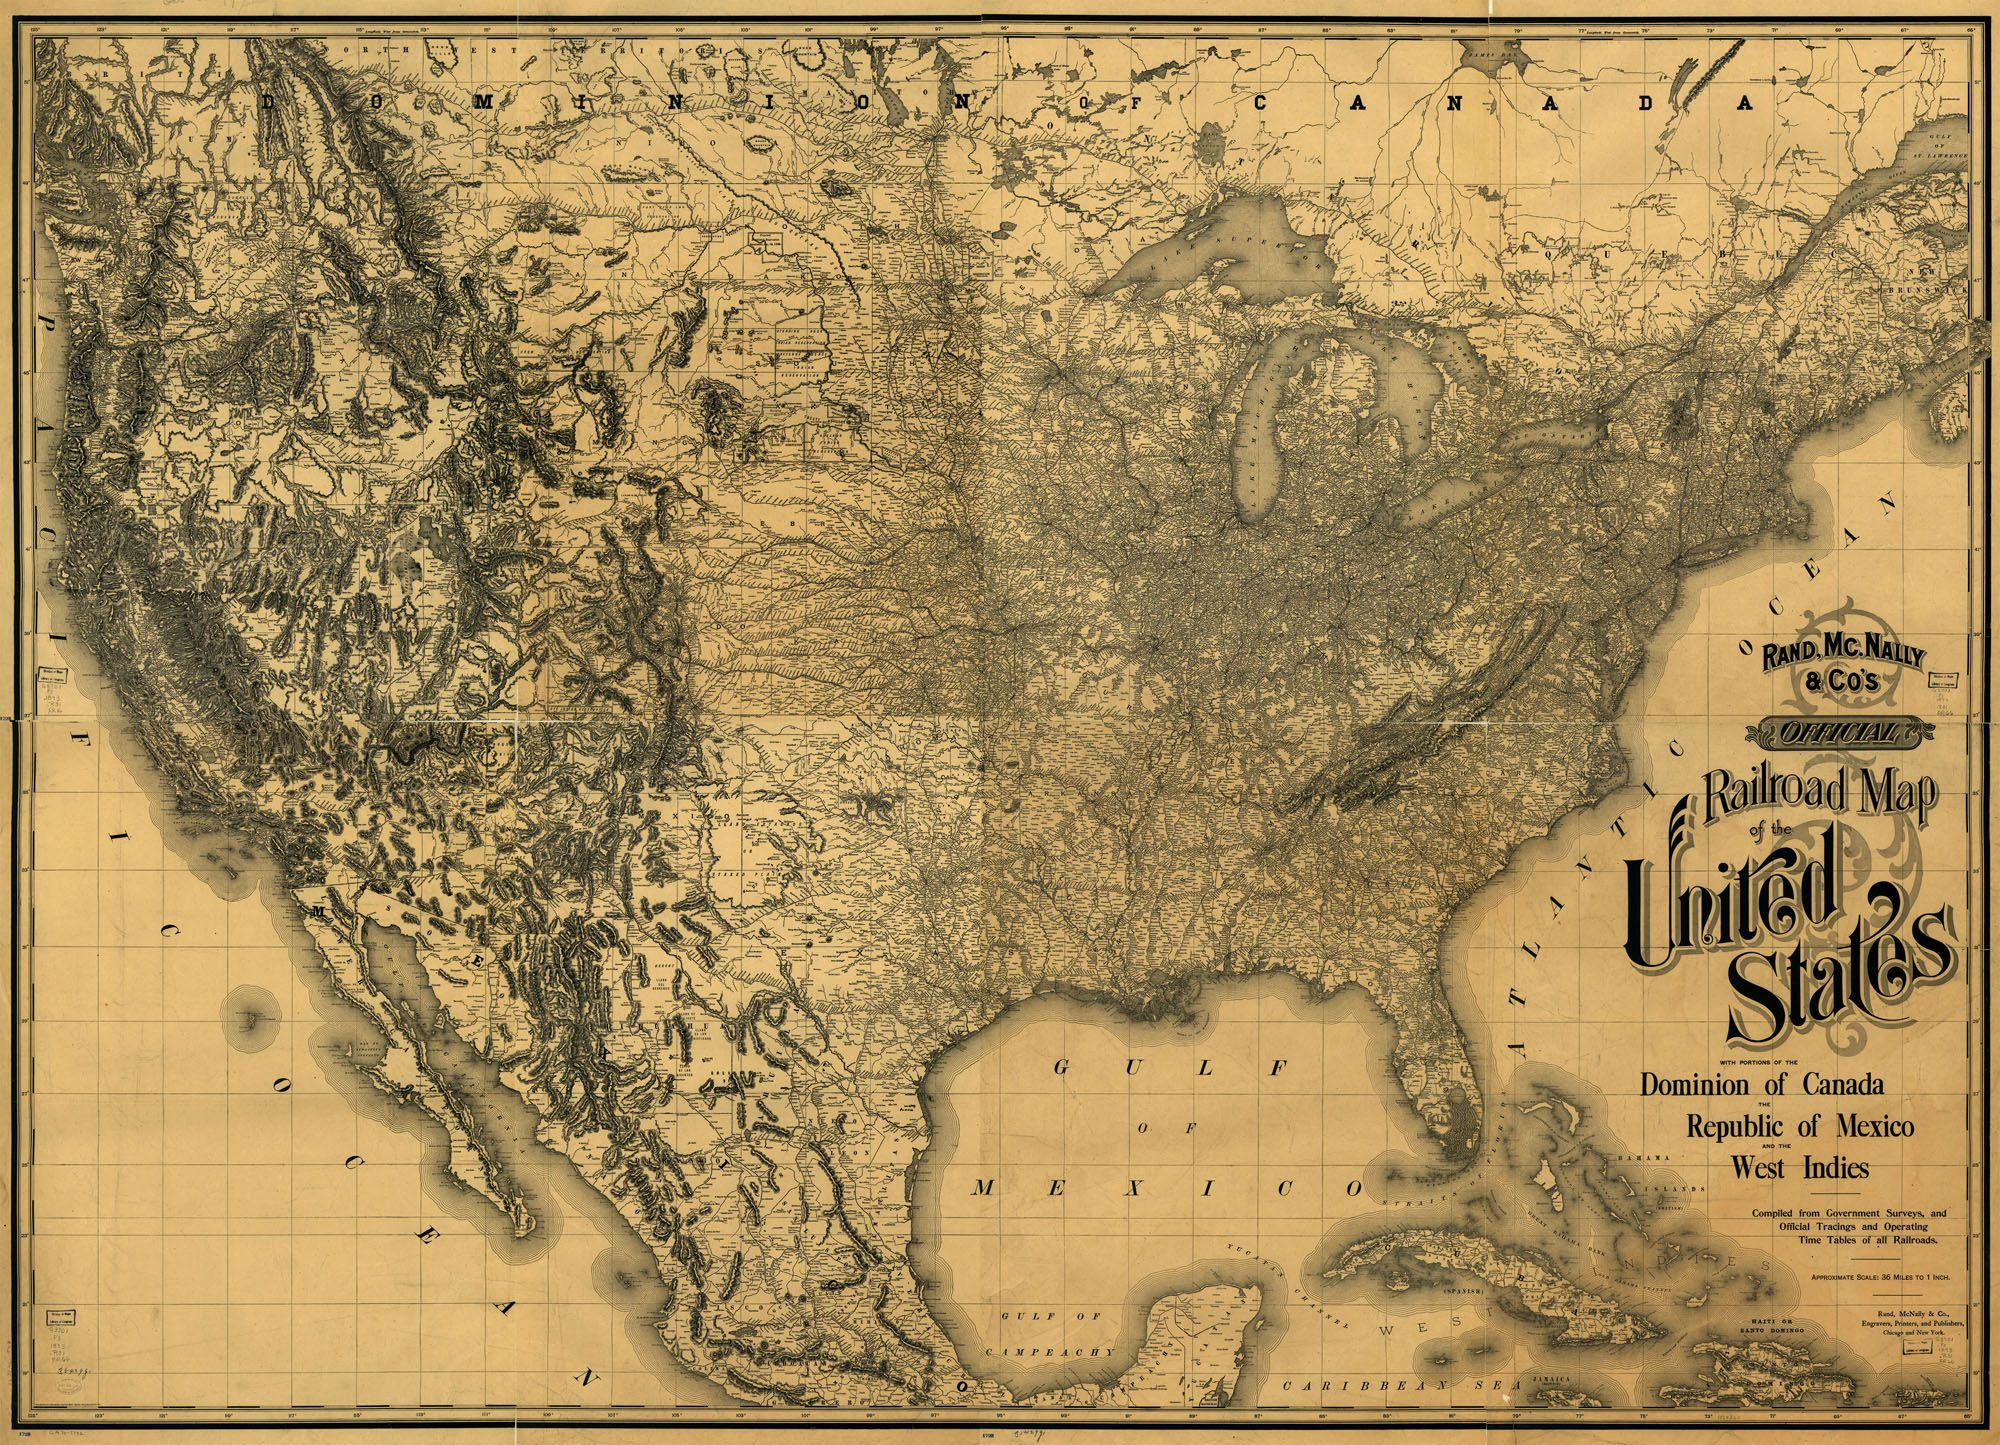 Railroad Map of the United States 1893 Where in the world